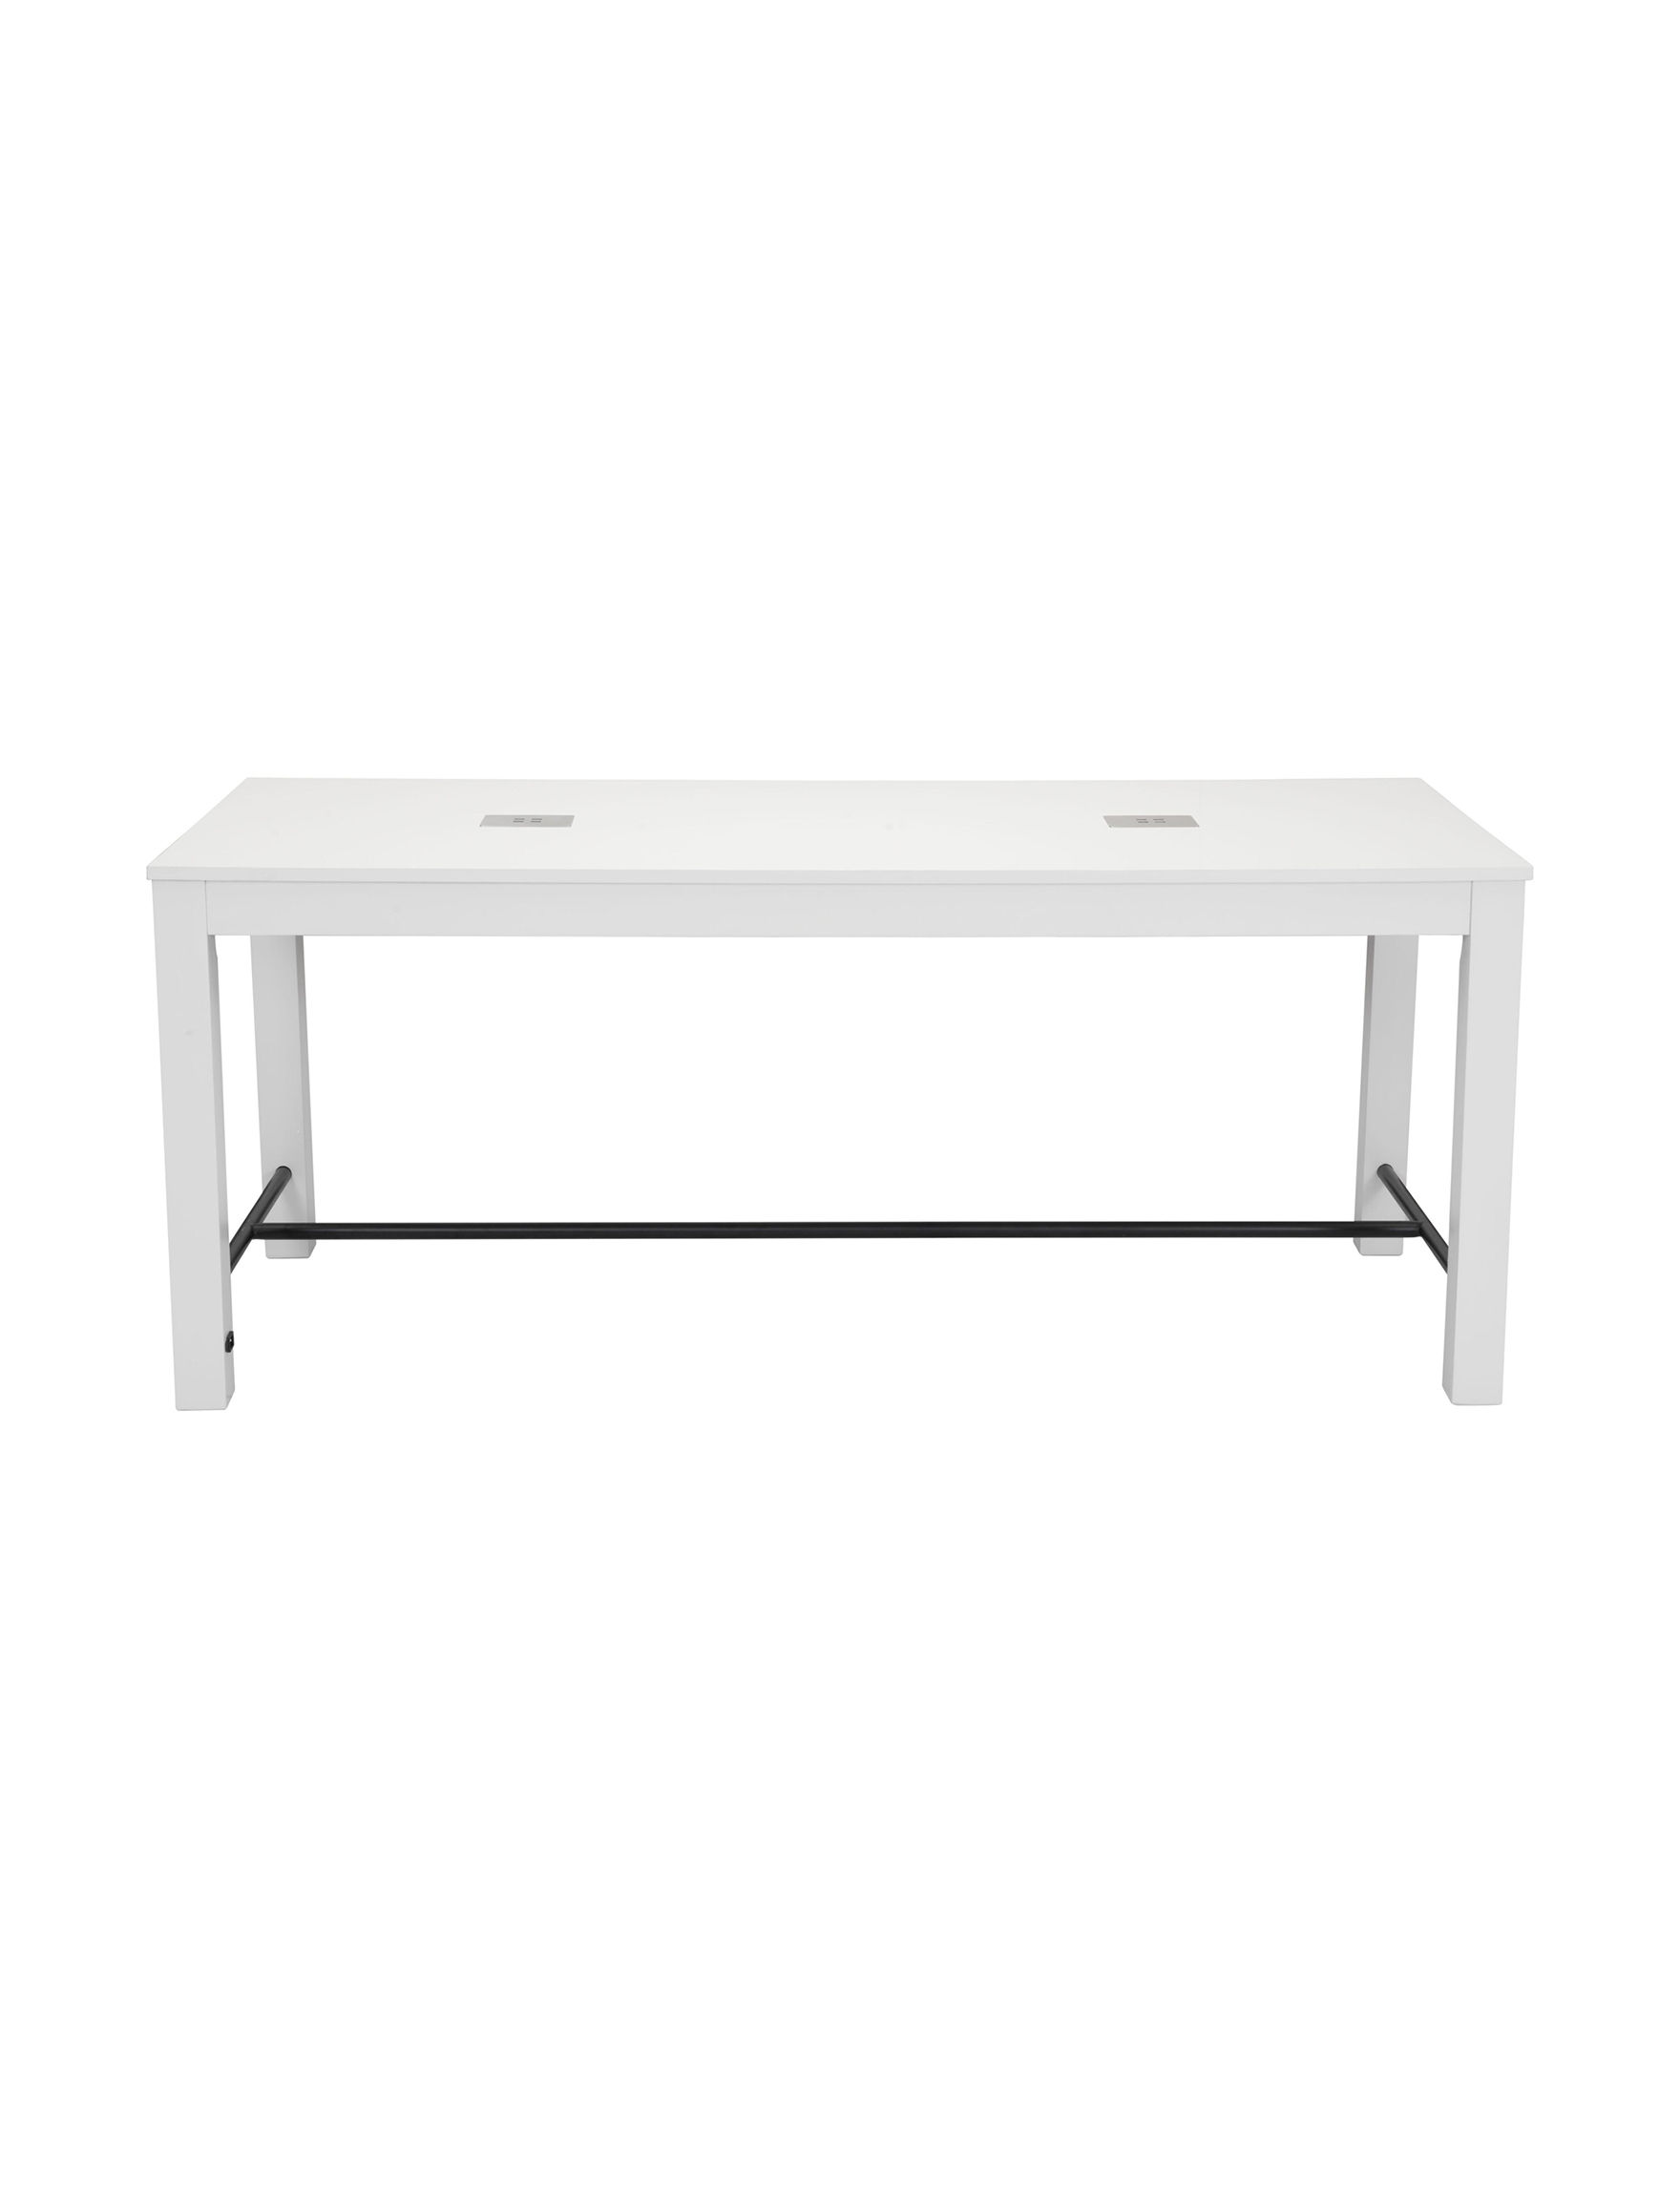 Zuo Modern White Dining Tables Kitchen & Dining Furniture